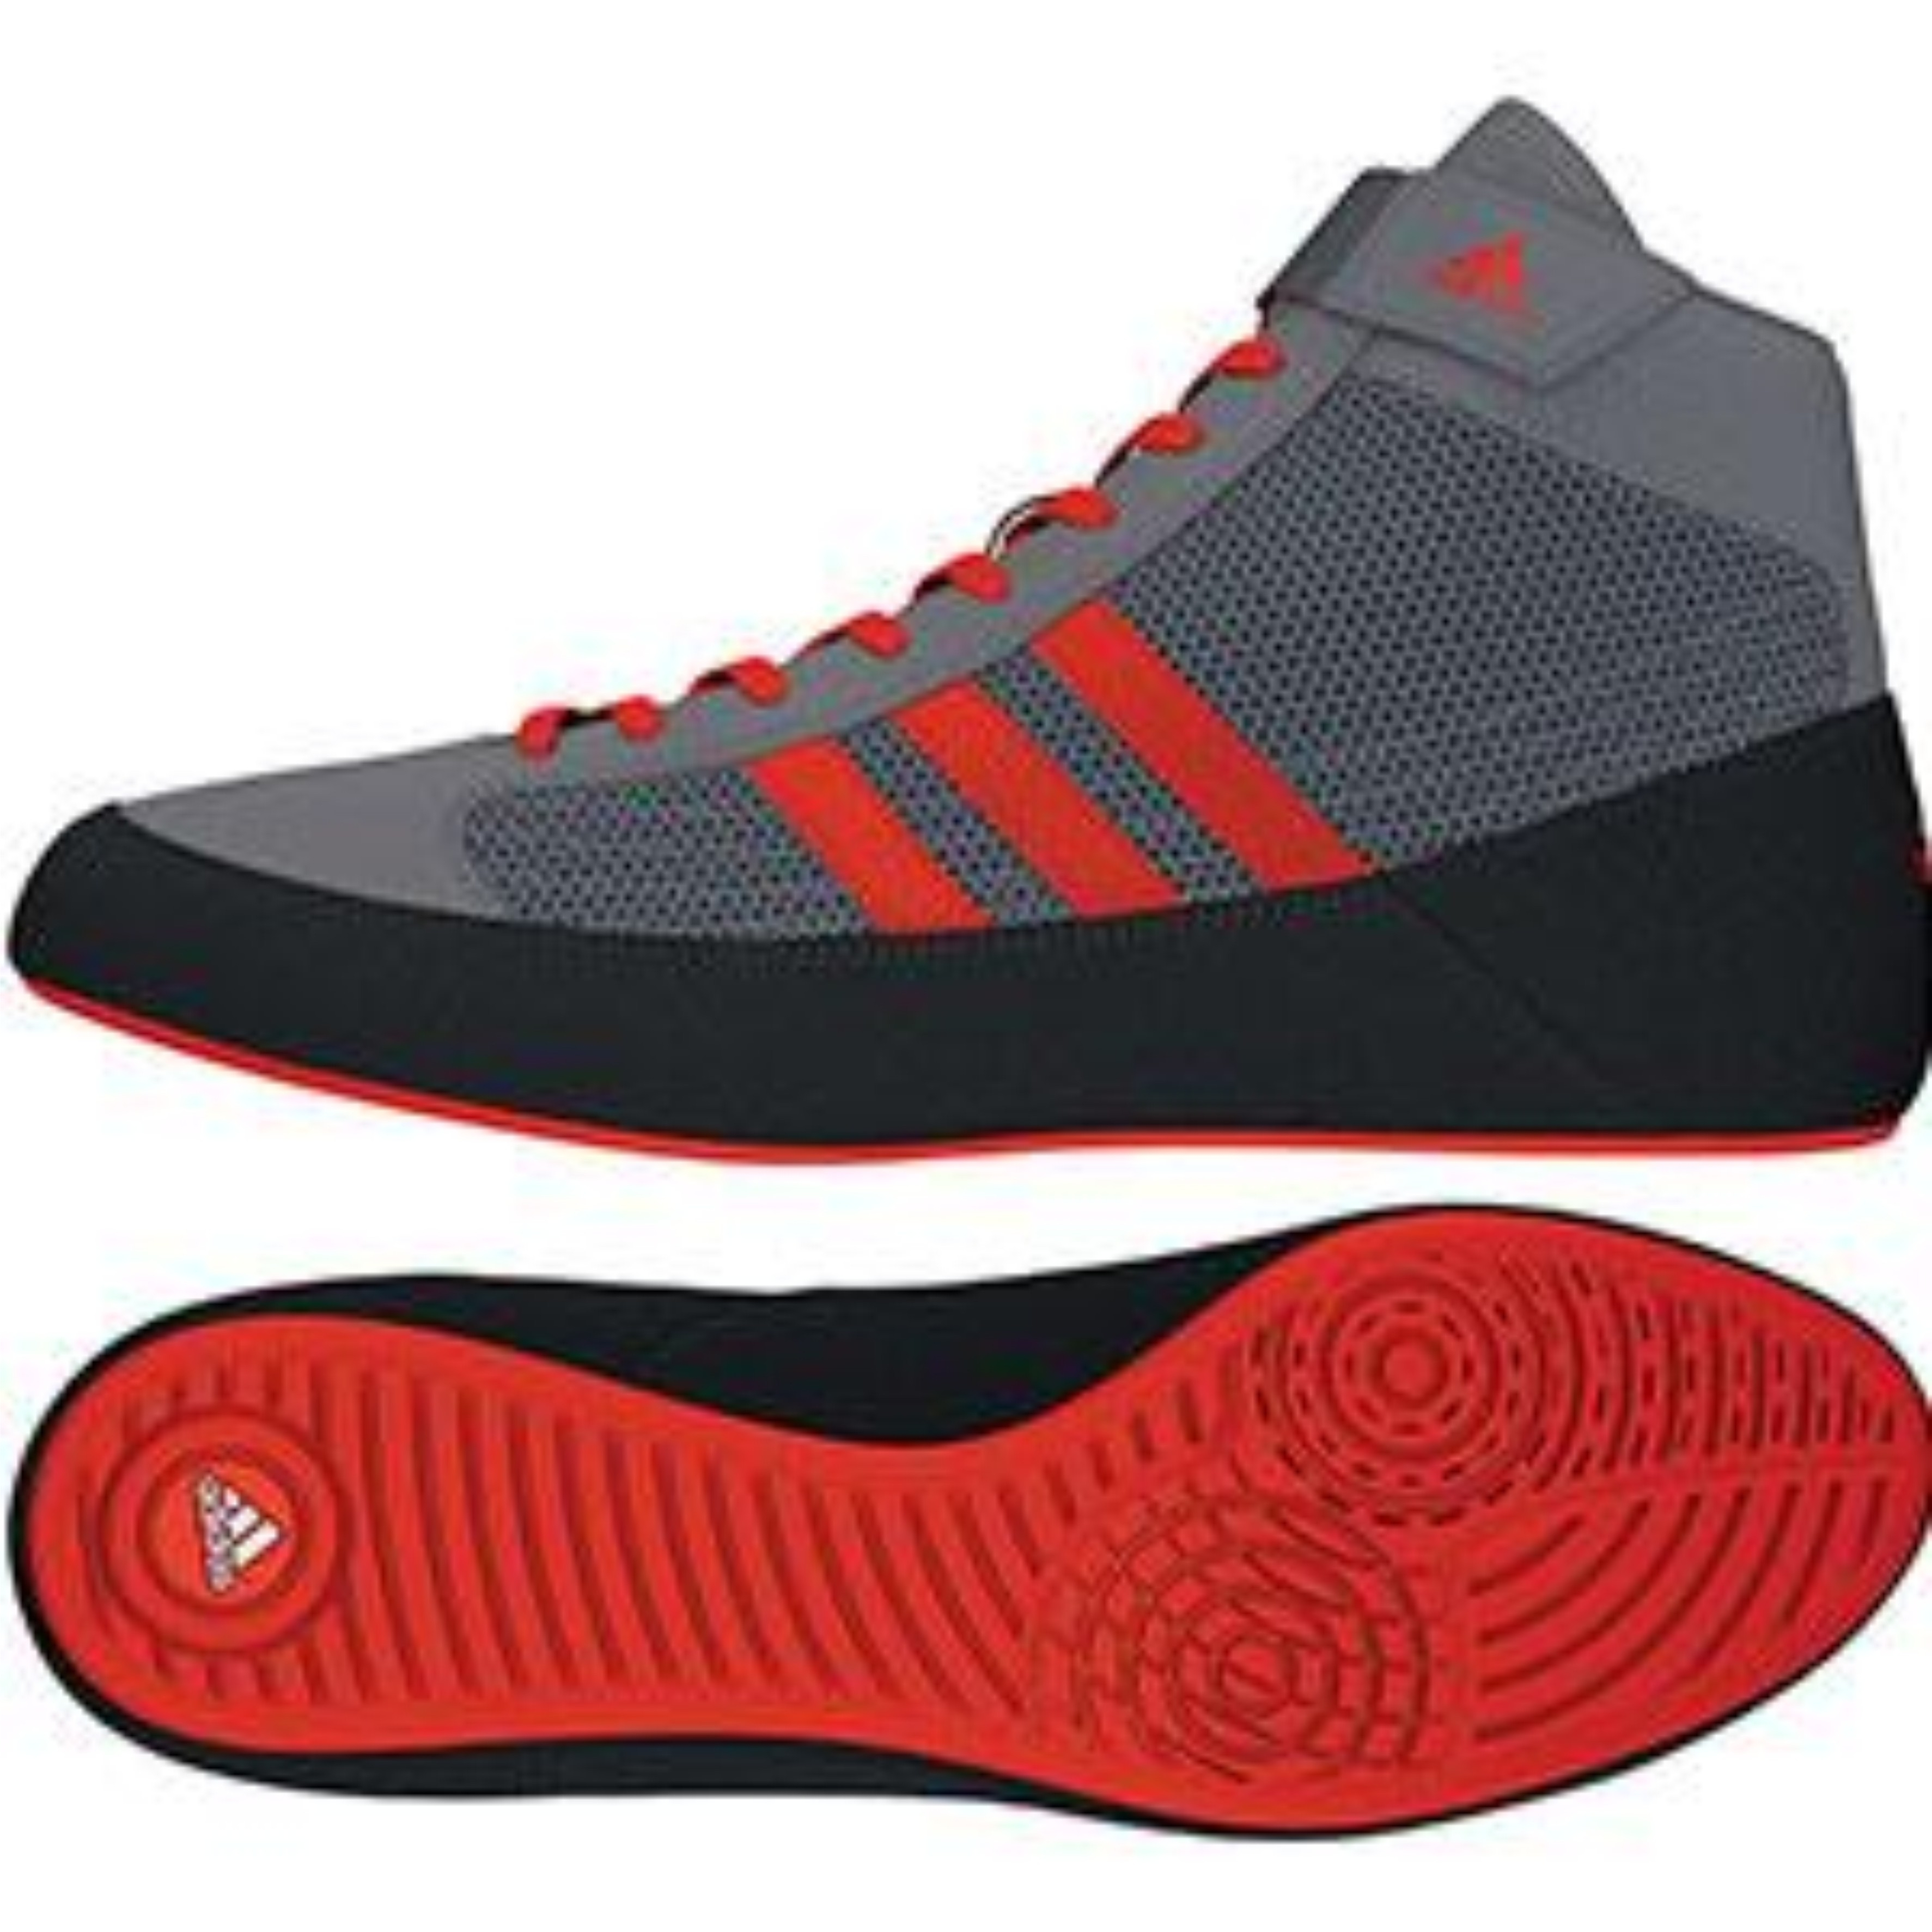 3e701bf6ad934c Adidas HVC Wrestling Shoes - Youth - Laced